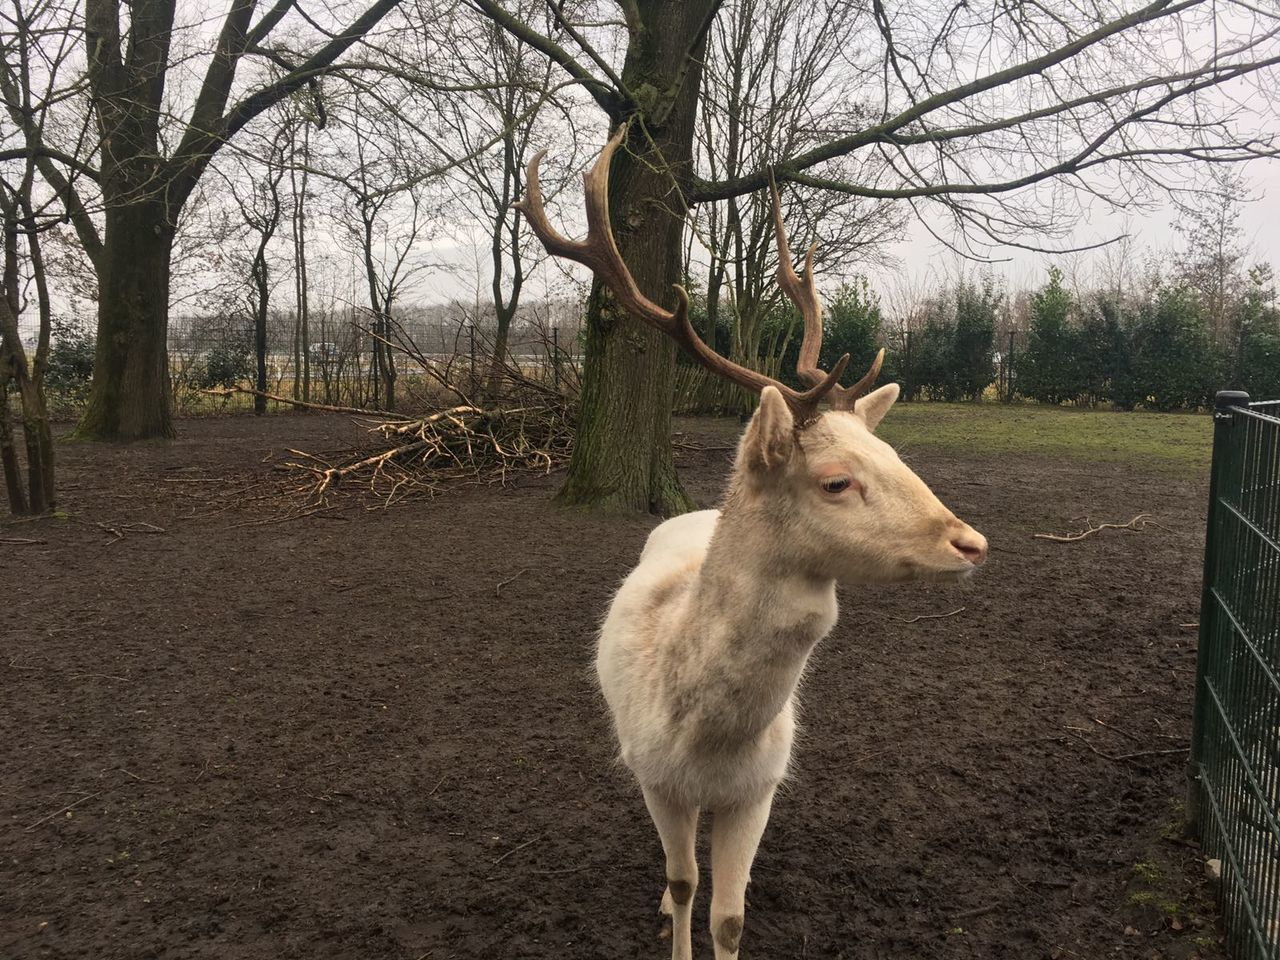 Tree Animal Themes One Animal Mammal Domestic Animals Nature No People Landscape Day Outdoors Animal Animal_collection Animal Photography Winter Time Deer No Filter, No Edit, Just Photography Smartphonephotography Nature On Your Doorstep Nature_collection Animals In The Wild Winter Photography Nature Reserve Nature Proud Deers Nature Beauty Peace